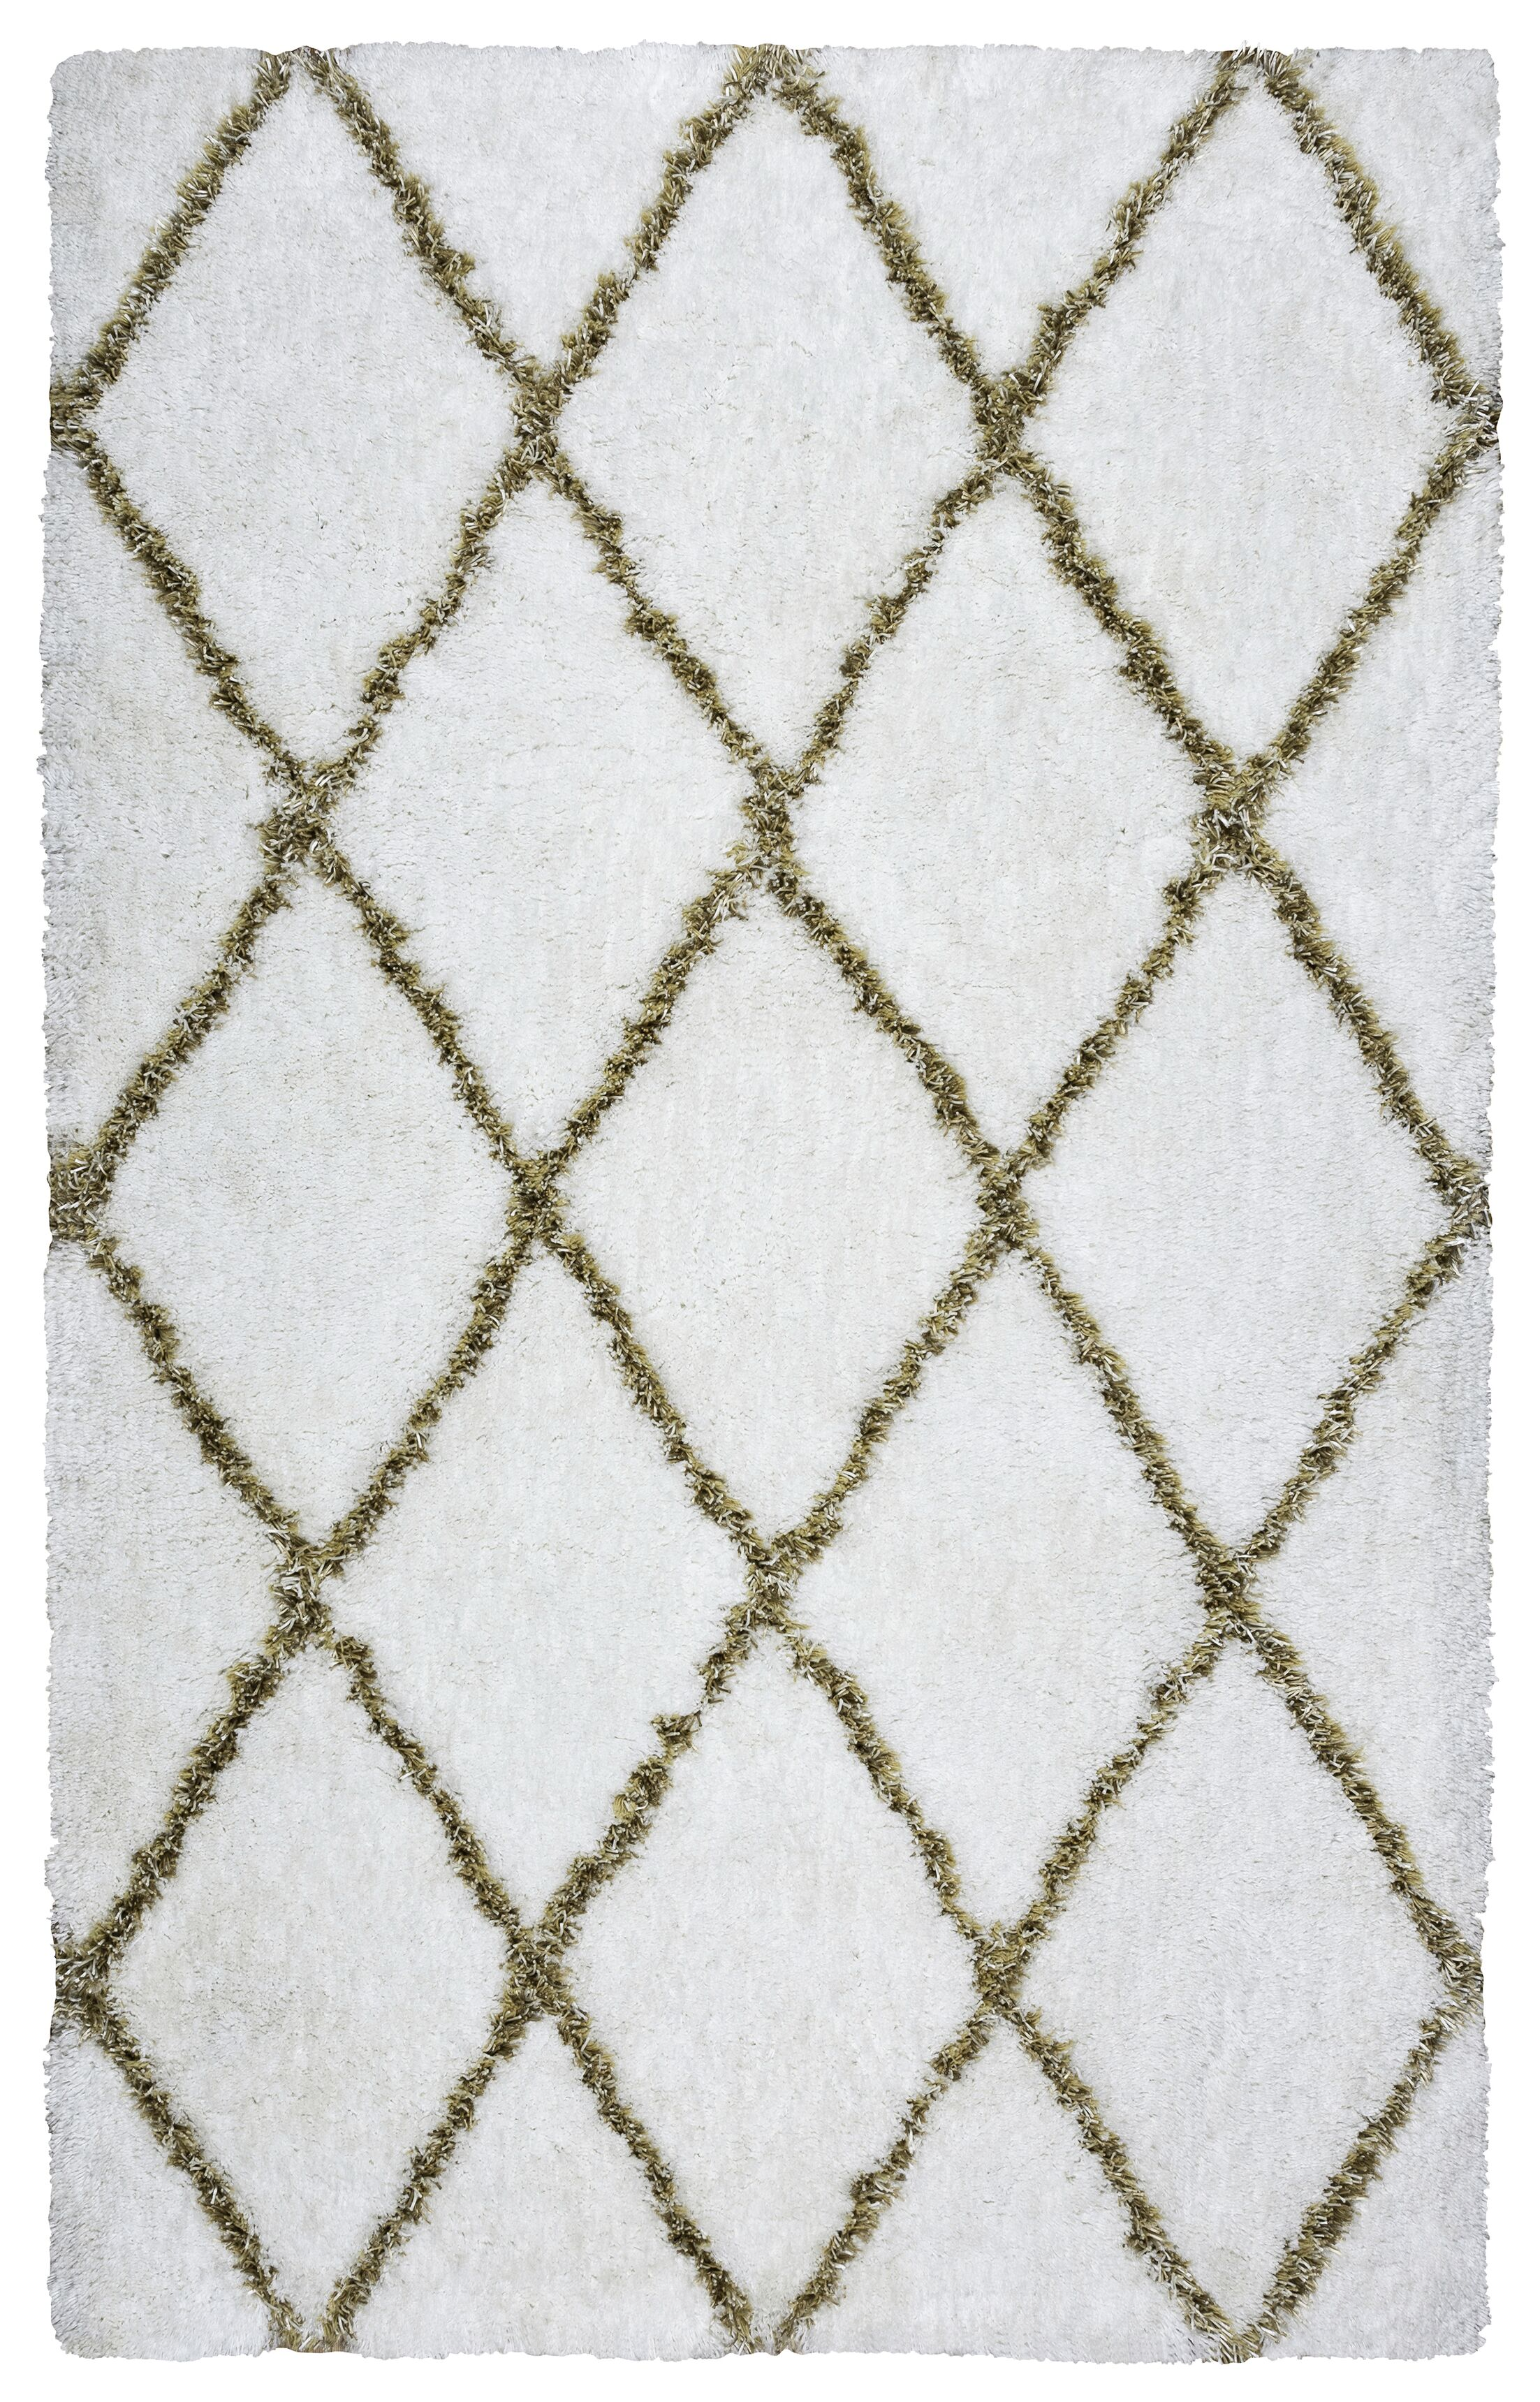 Beesley Hand-Tufted White/Beige Area Rug Size: Rectangle 9' x 12'